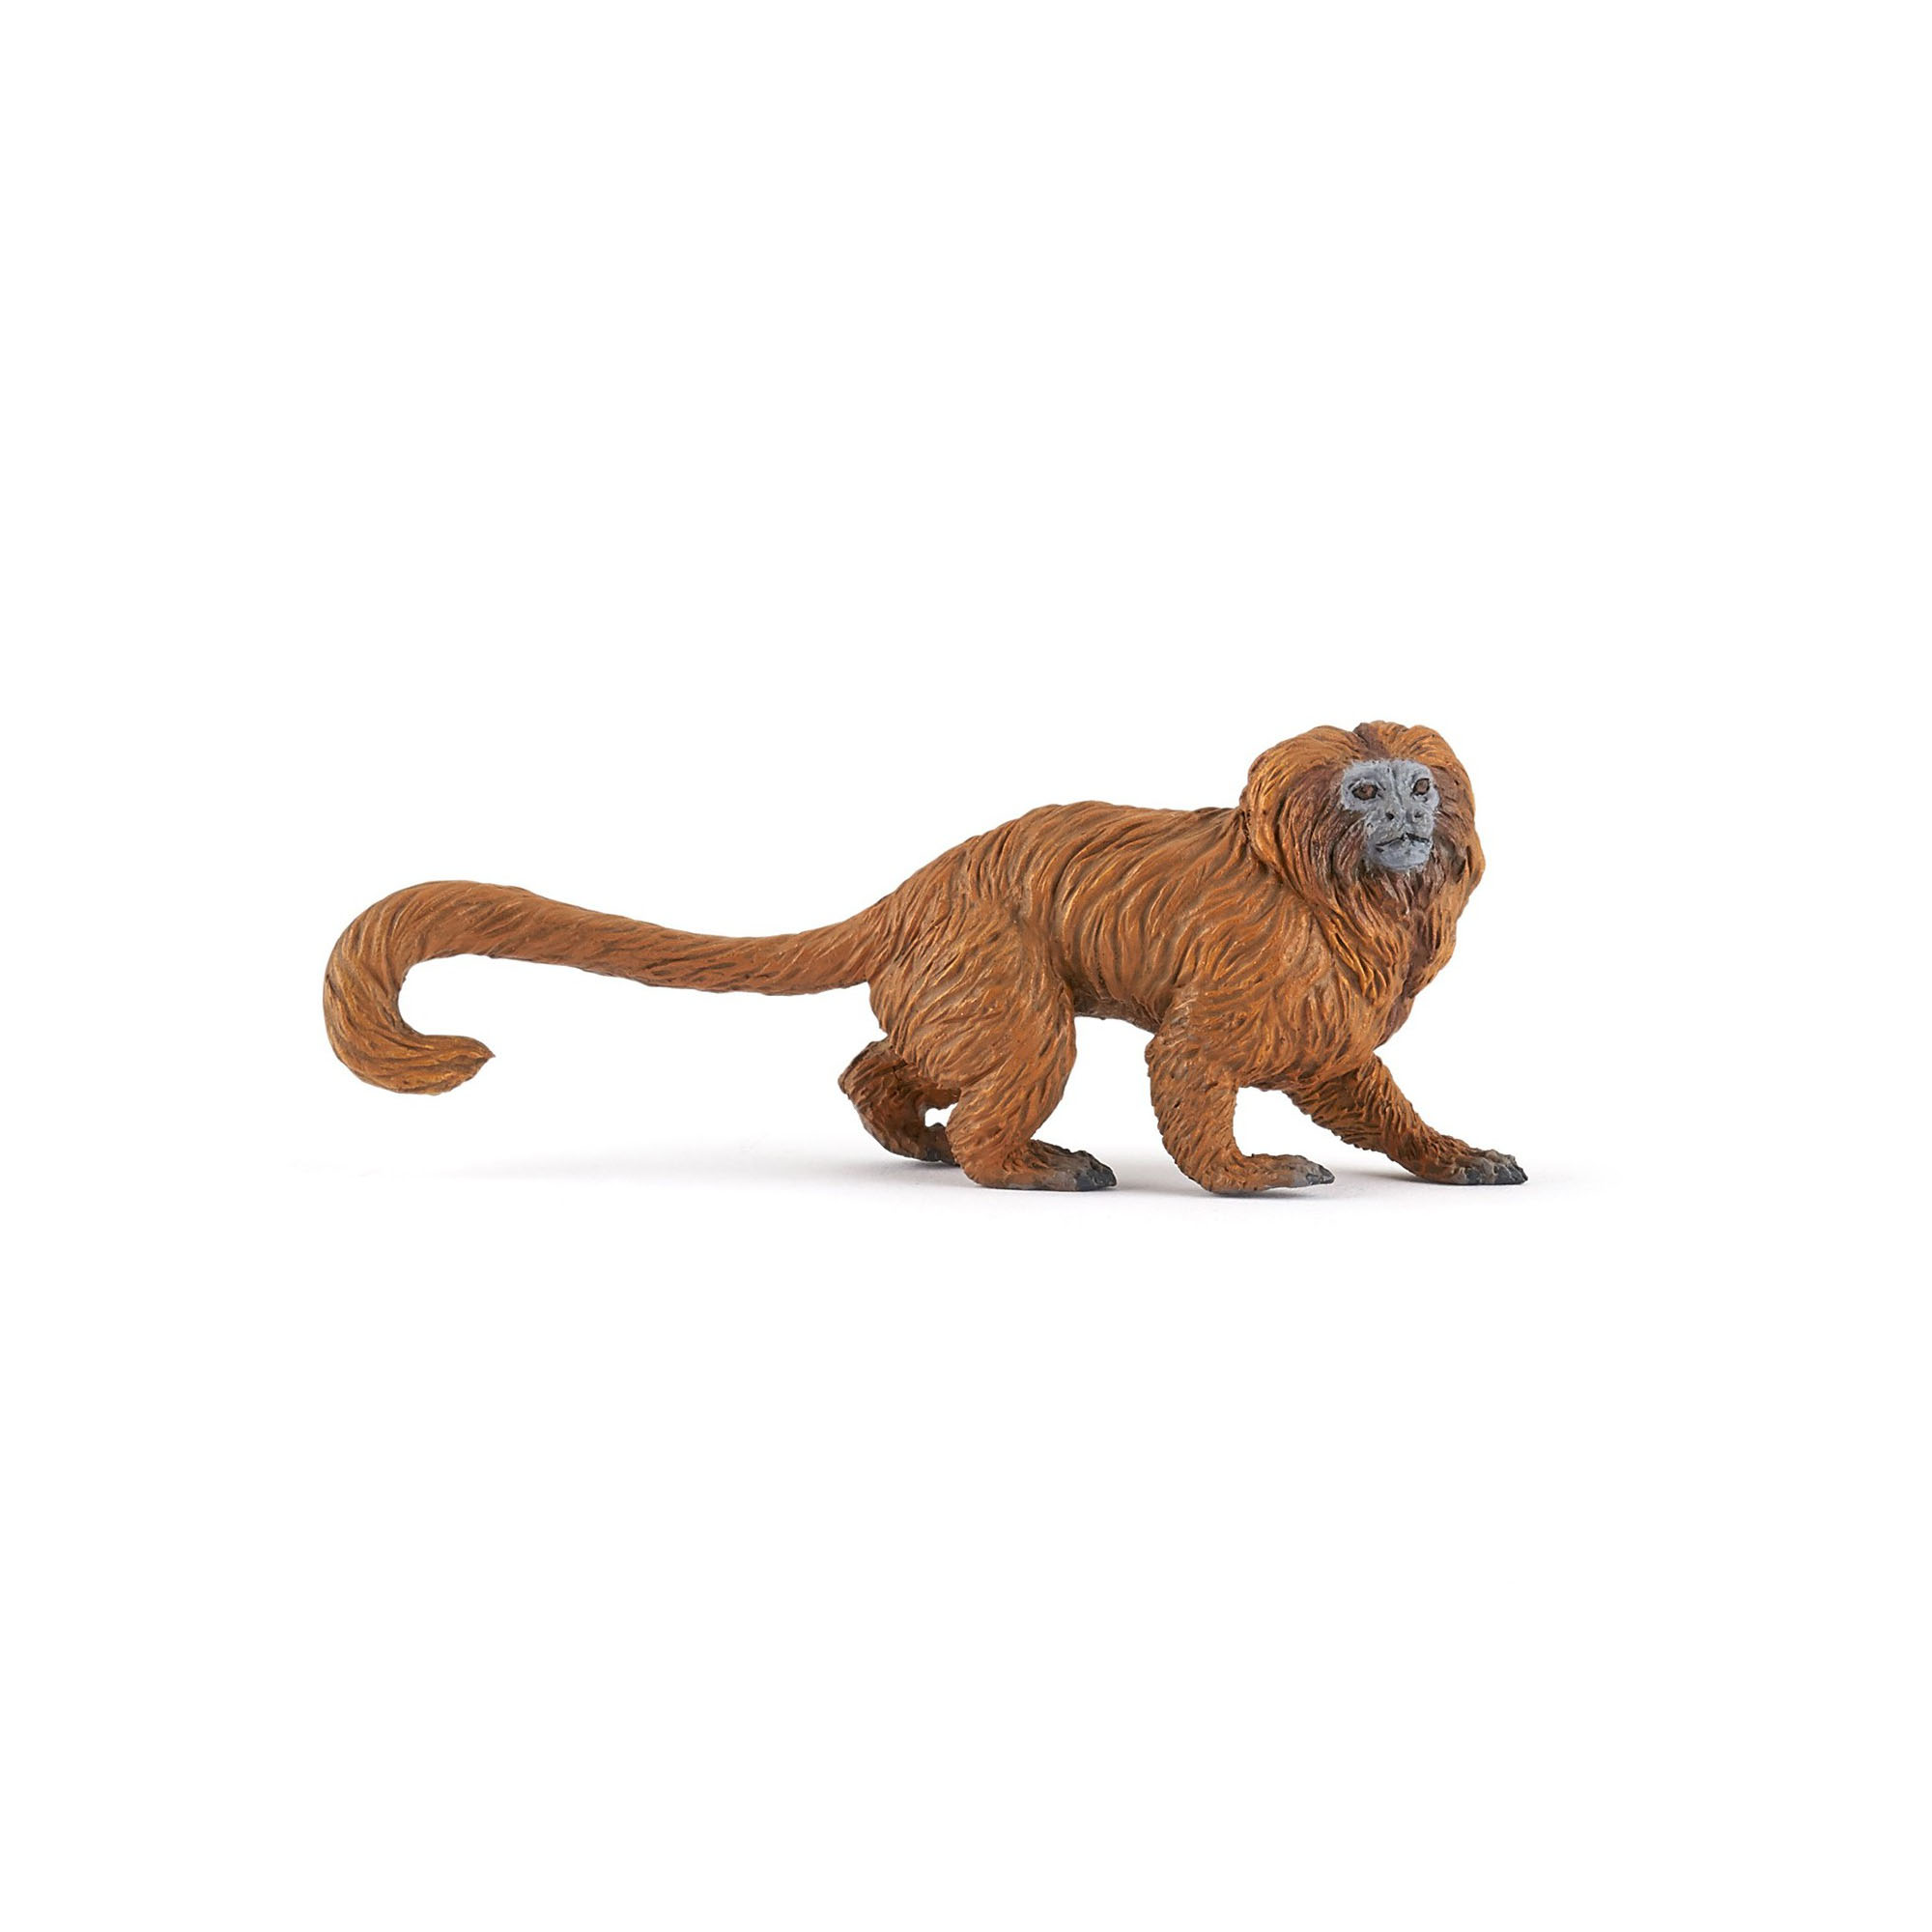 Golden lion tamarin figure